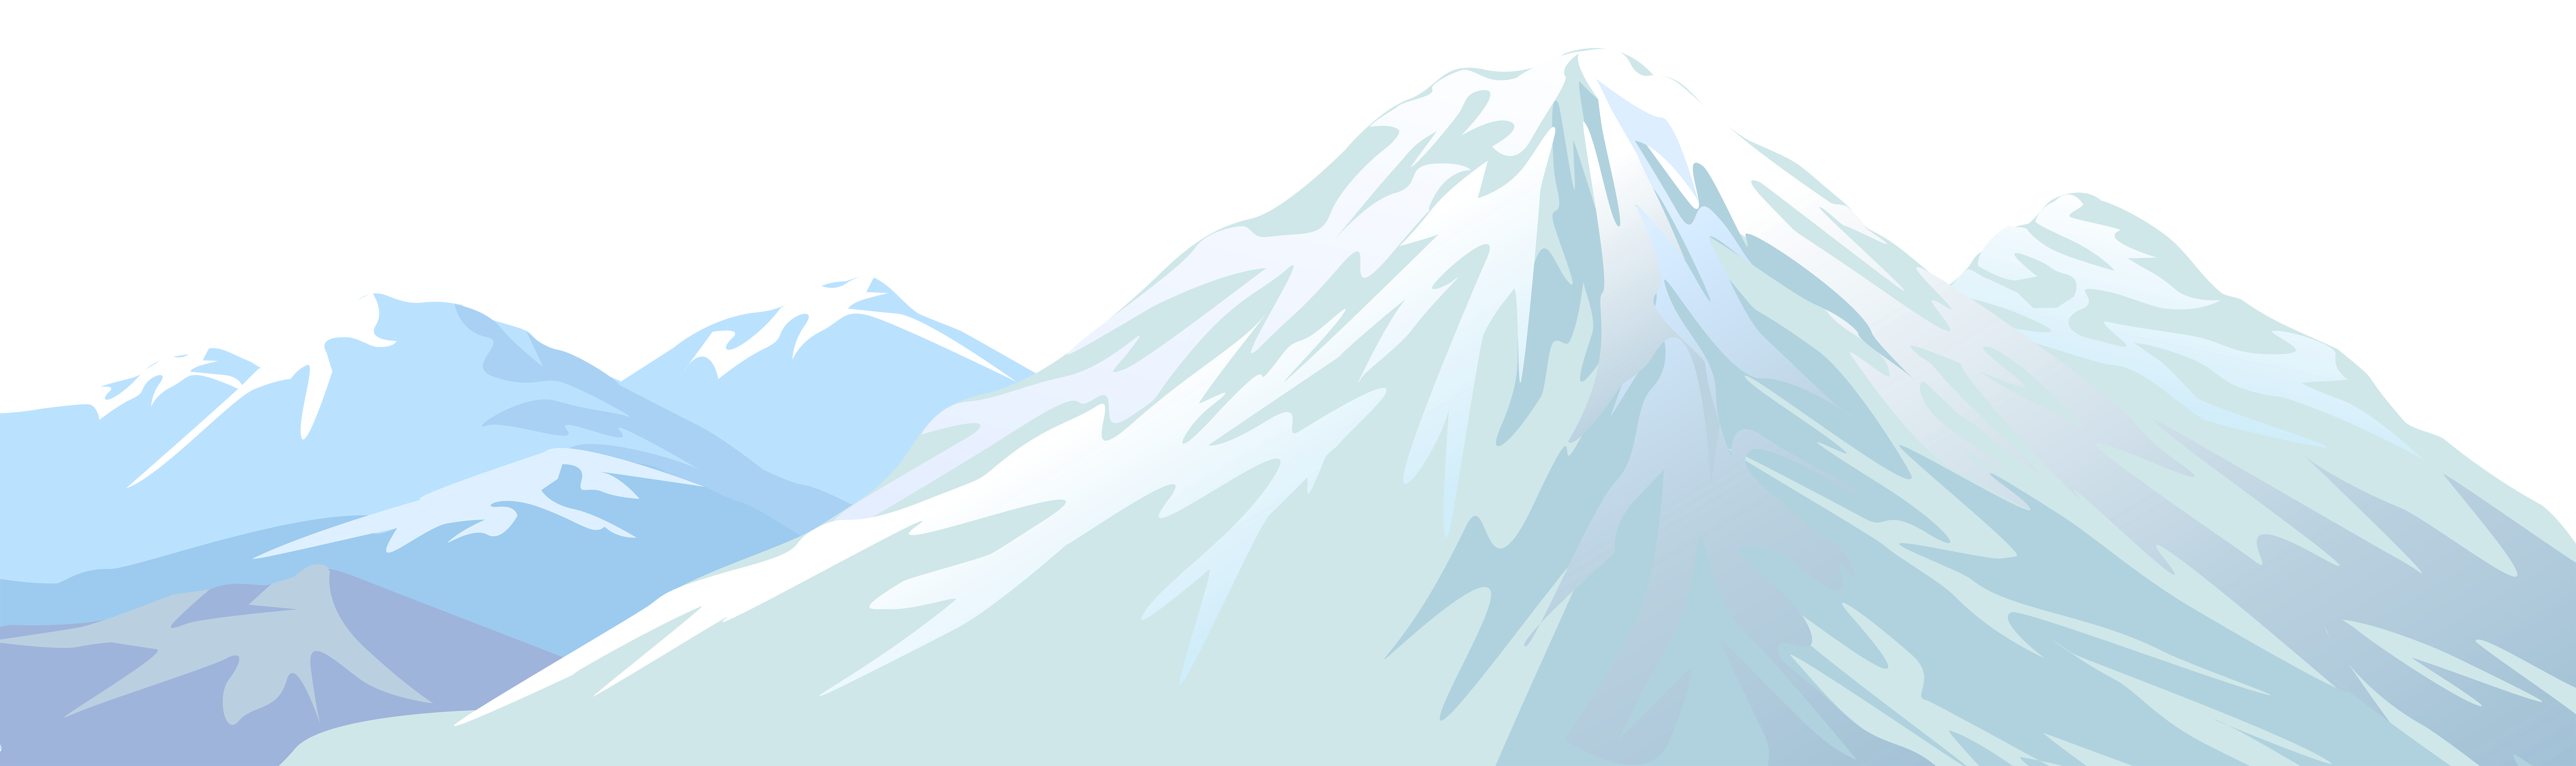 Winter snowy transparent png. Iceberg clipart snow mountain clip royalty free download